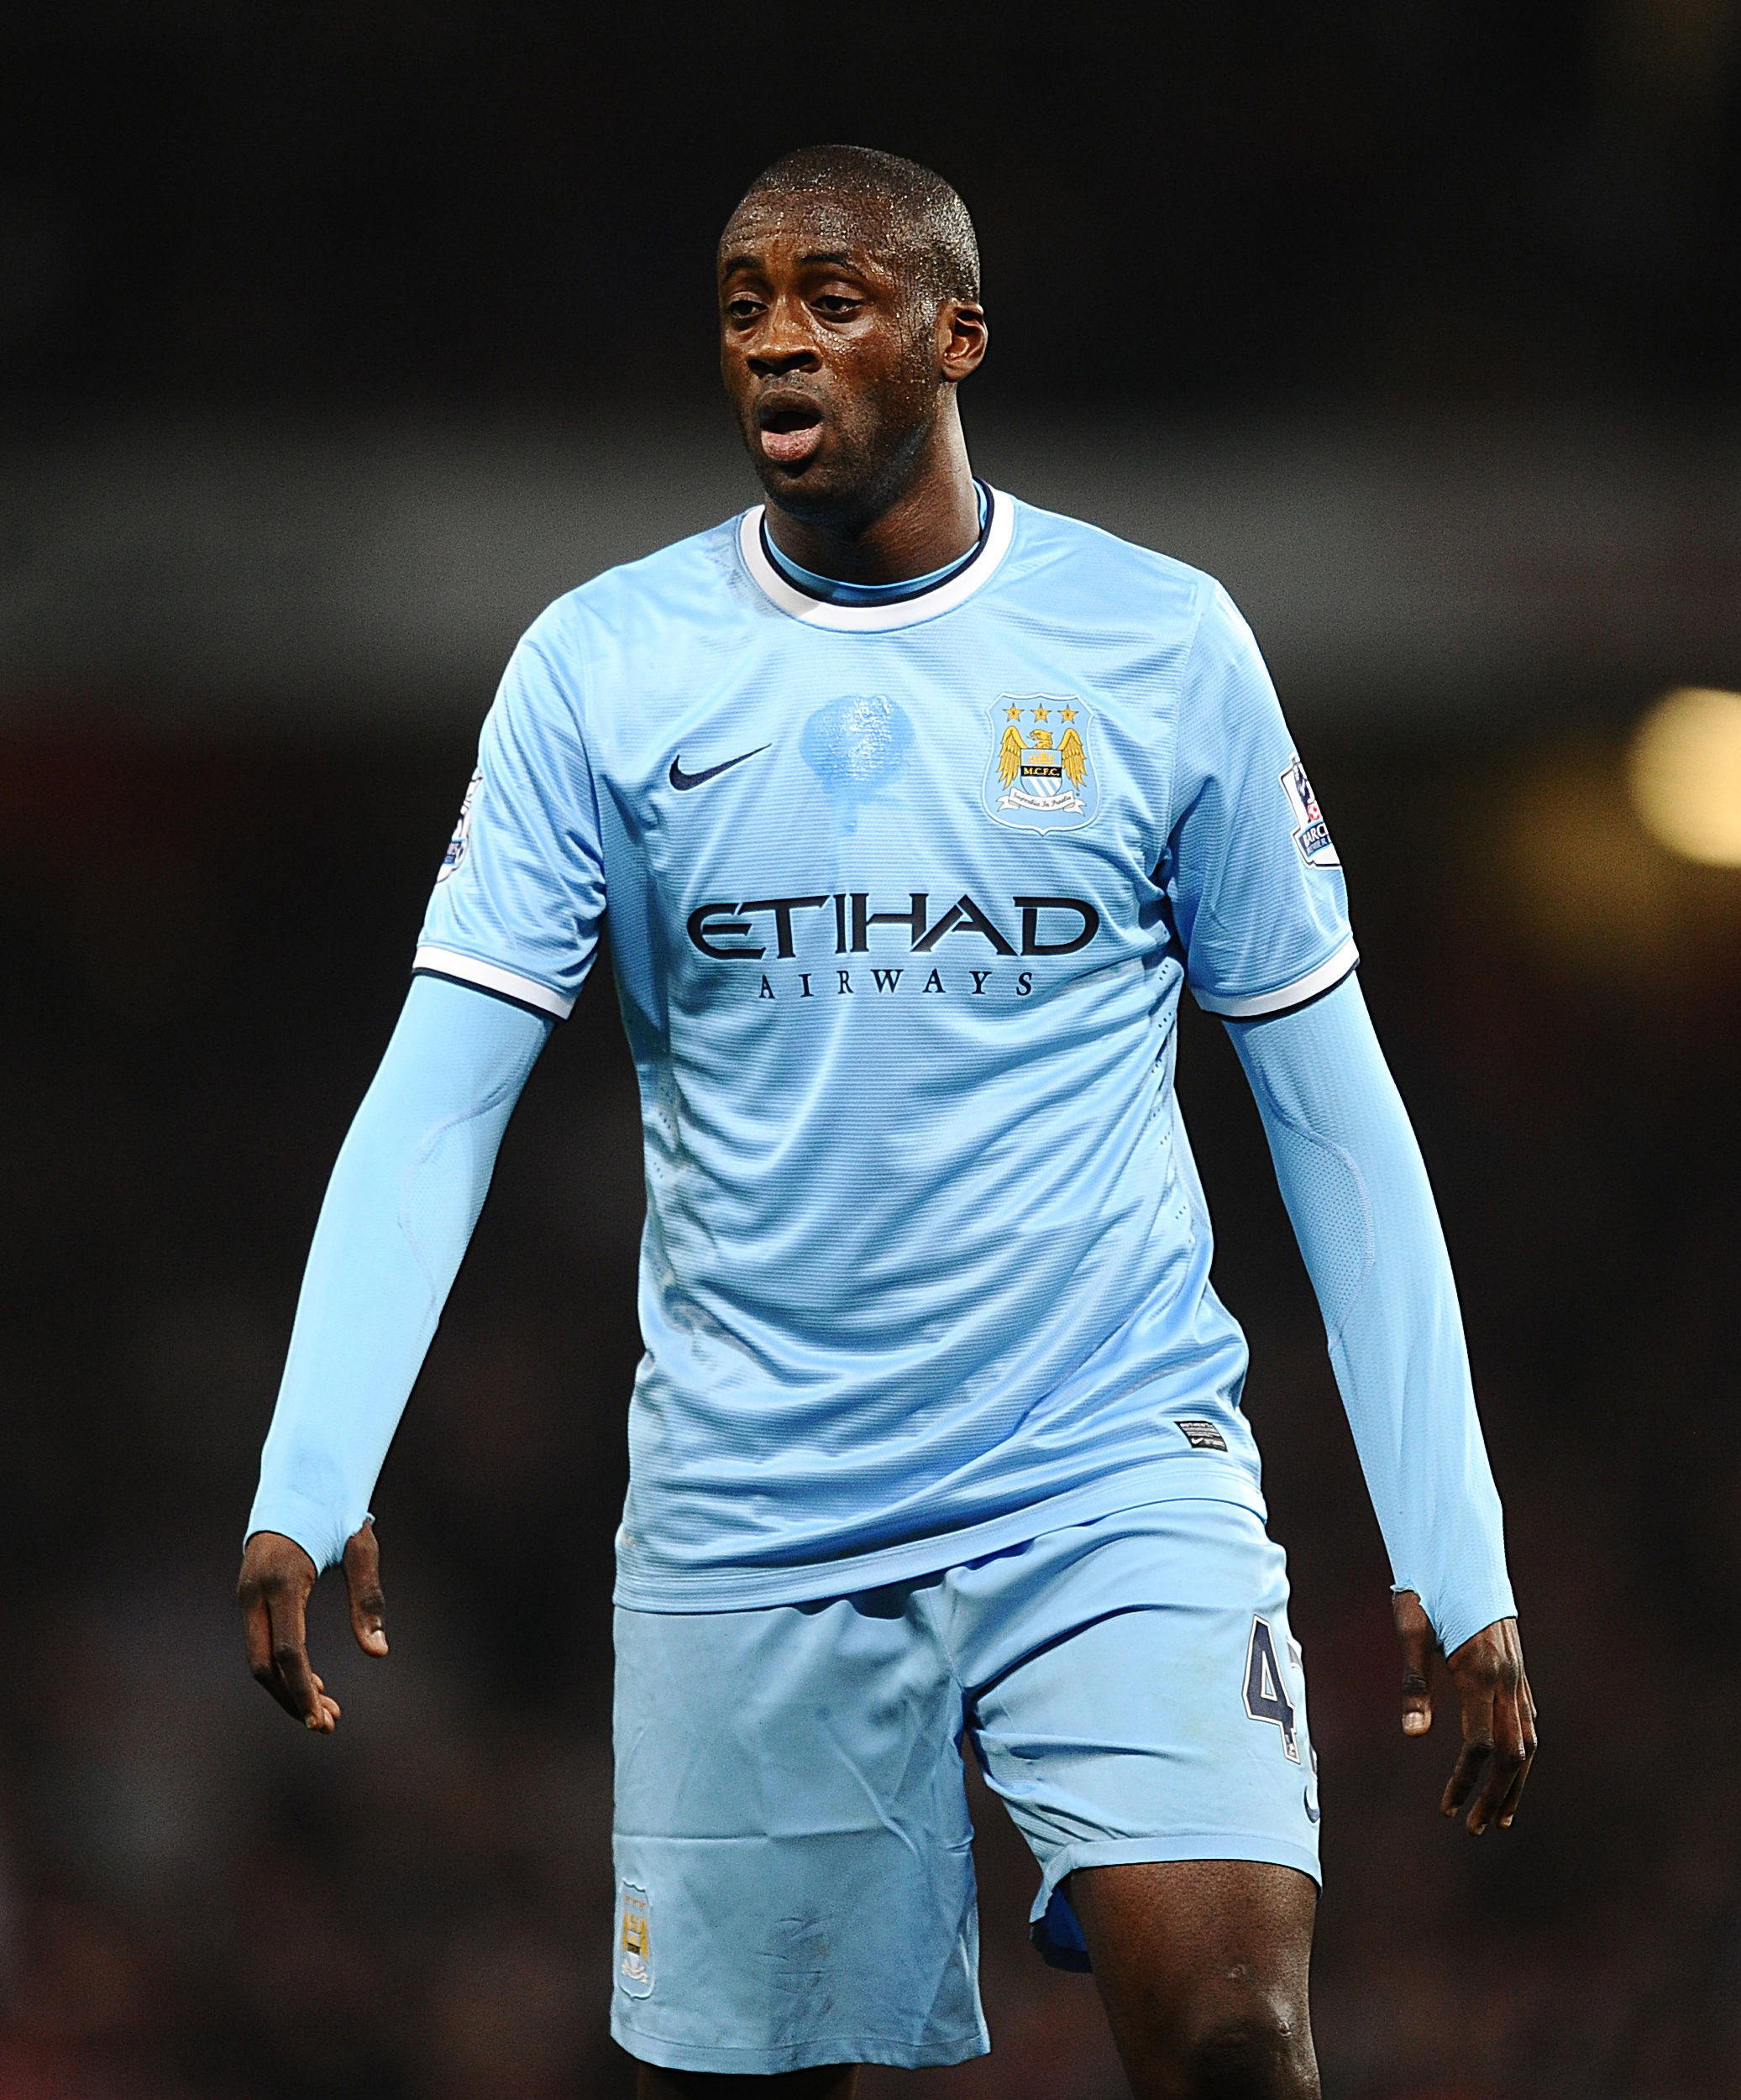 File photo dated 29/03/2014 of Manchester City's Yaya Toure.